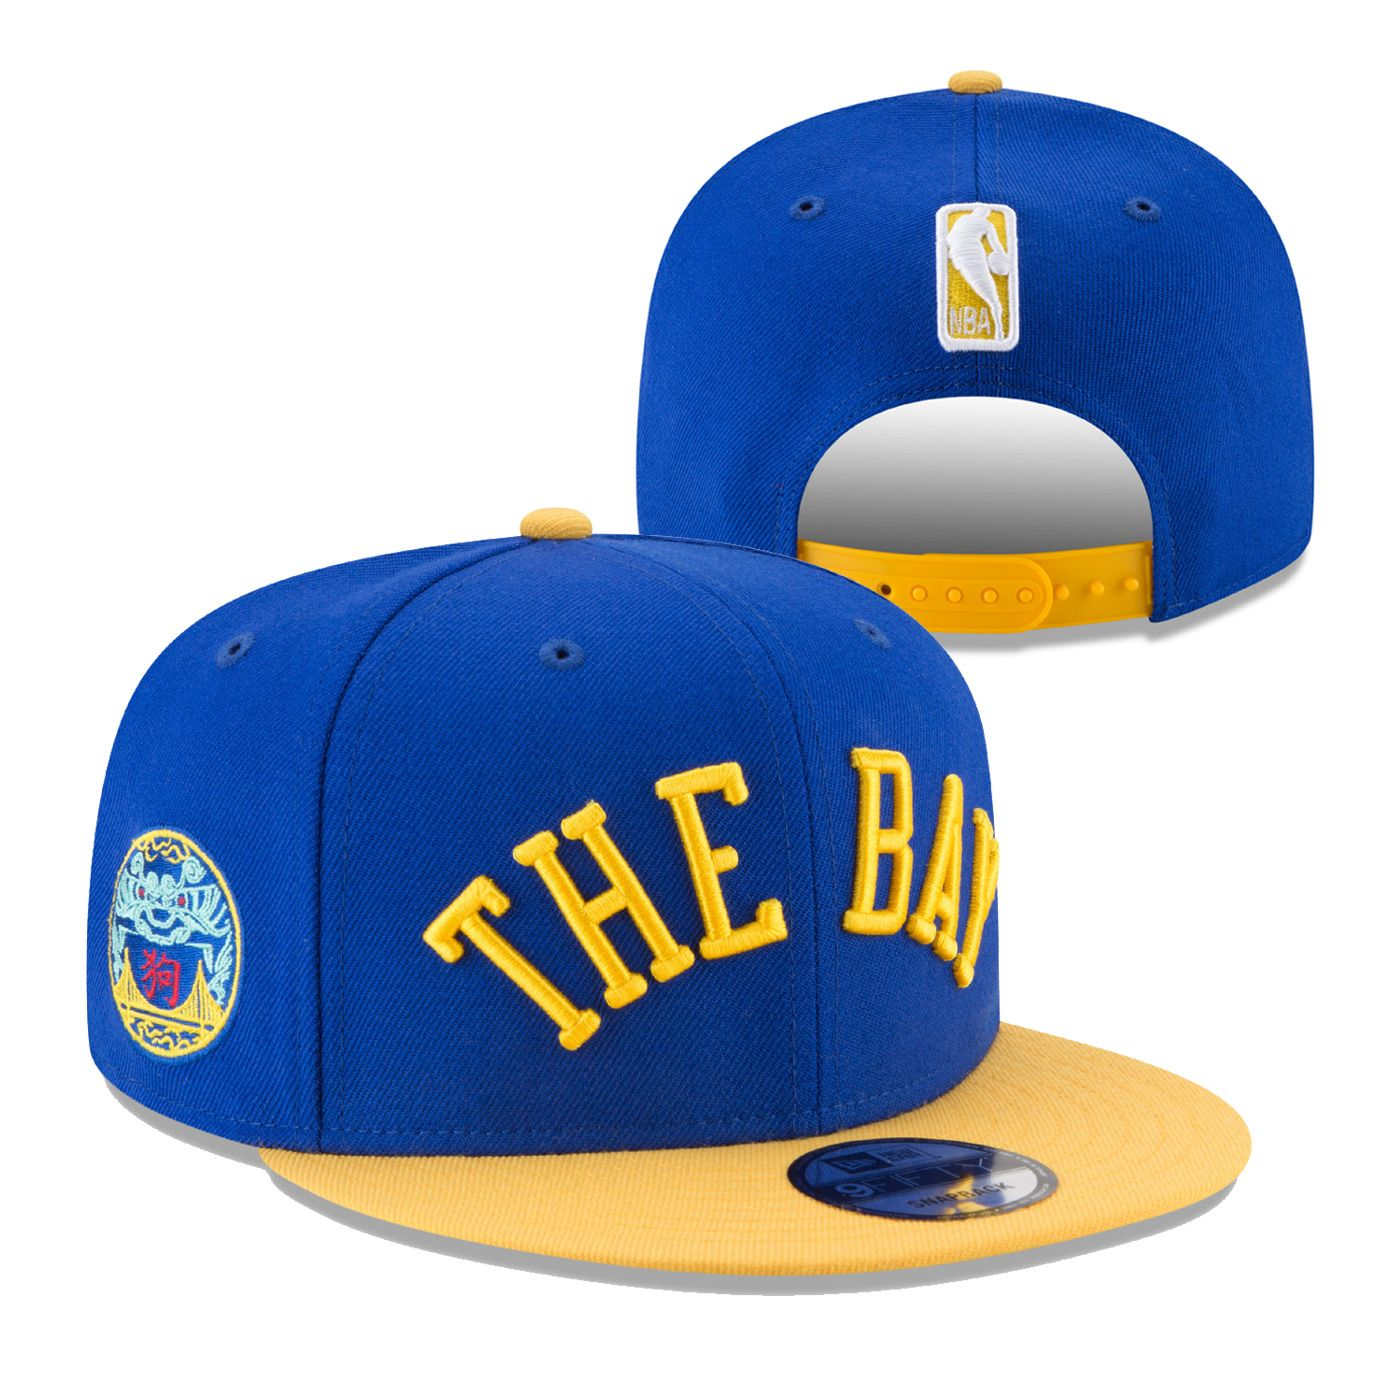 b8ae685e5 Golden State Warriors New Era Back To Back NBA Champions 9FIFTY ...